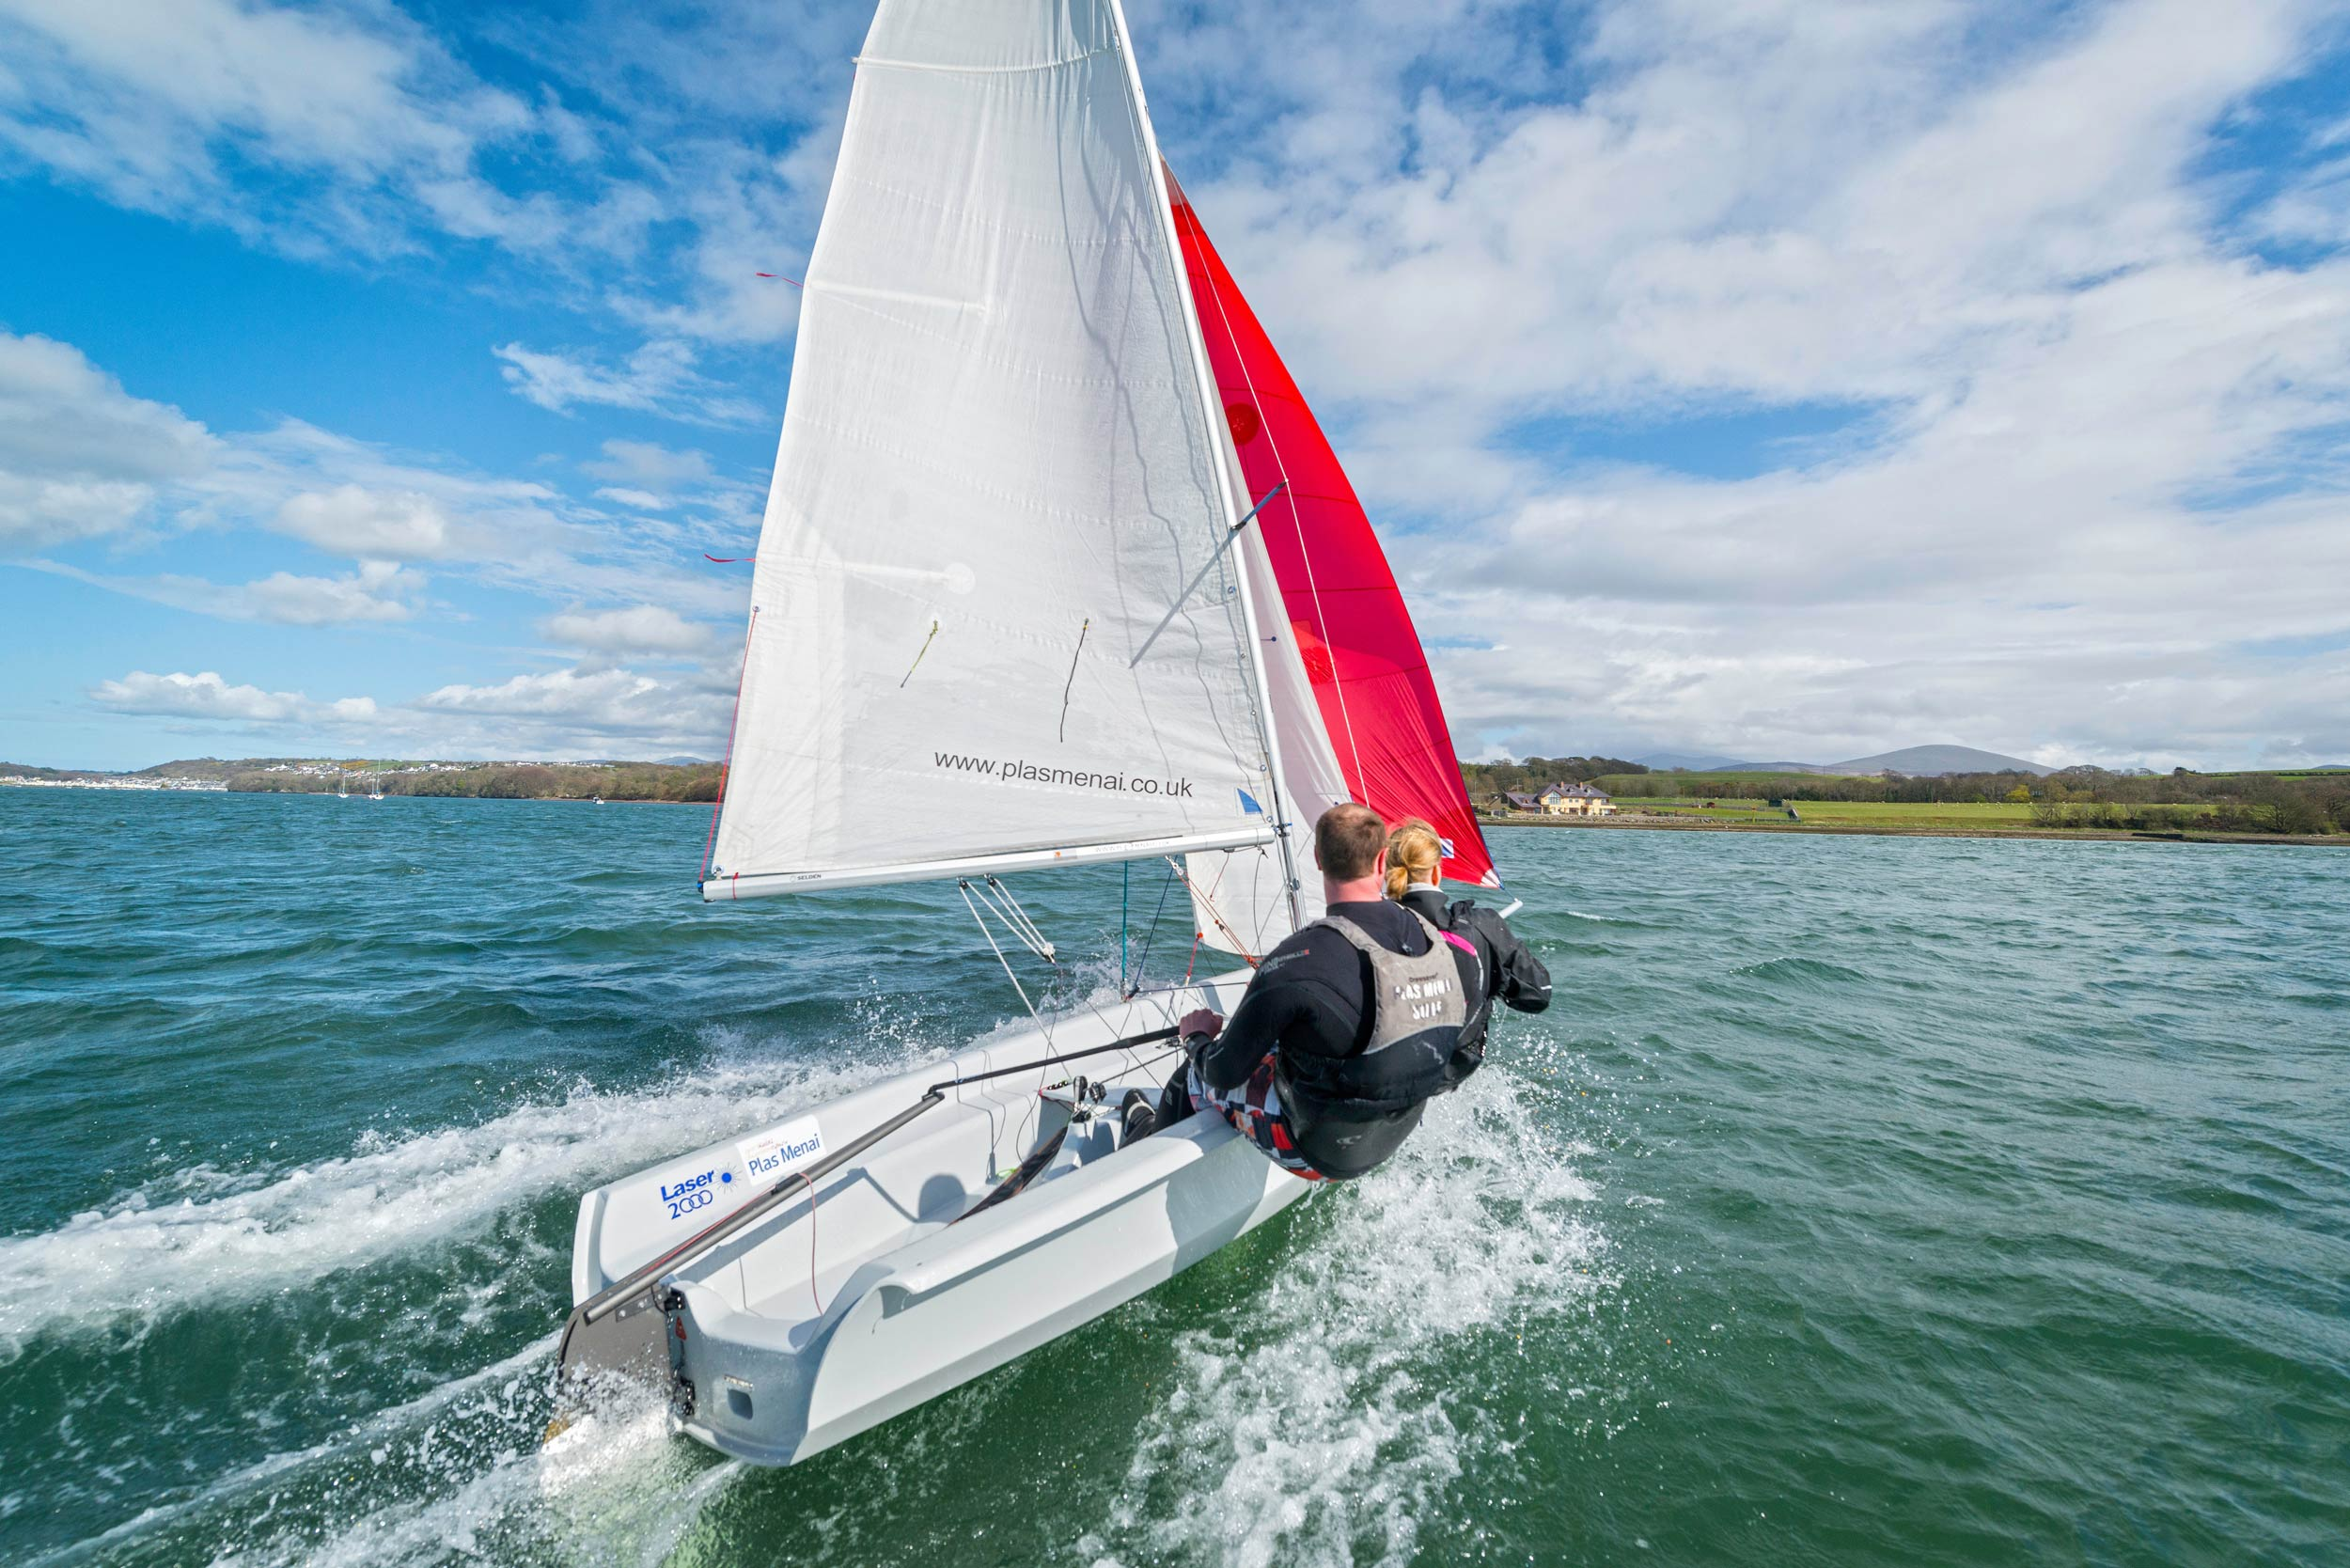 Sailing on the Menai Strait  (Crown copyright 2018 / Visit Wales)